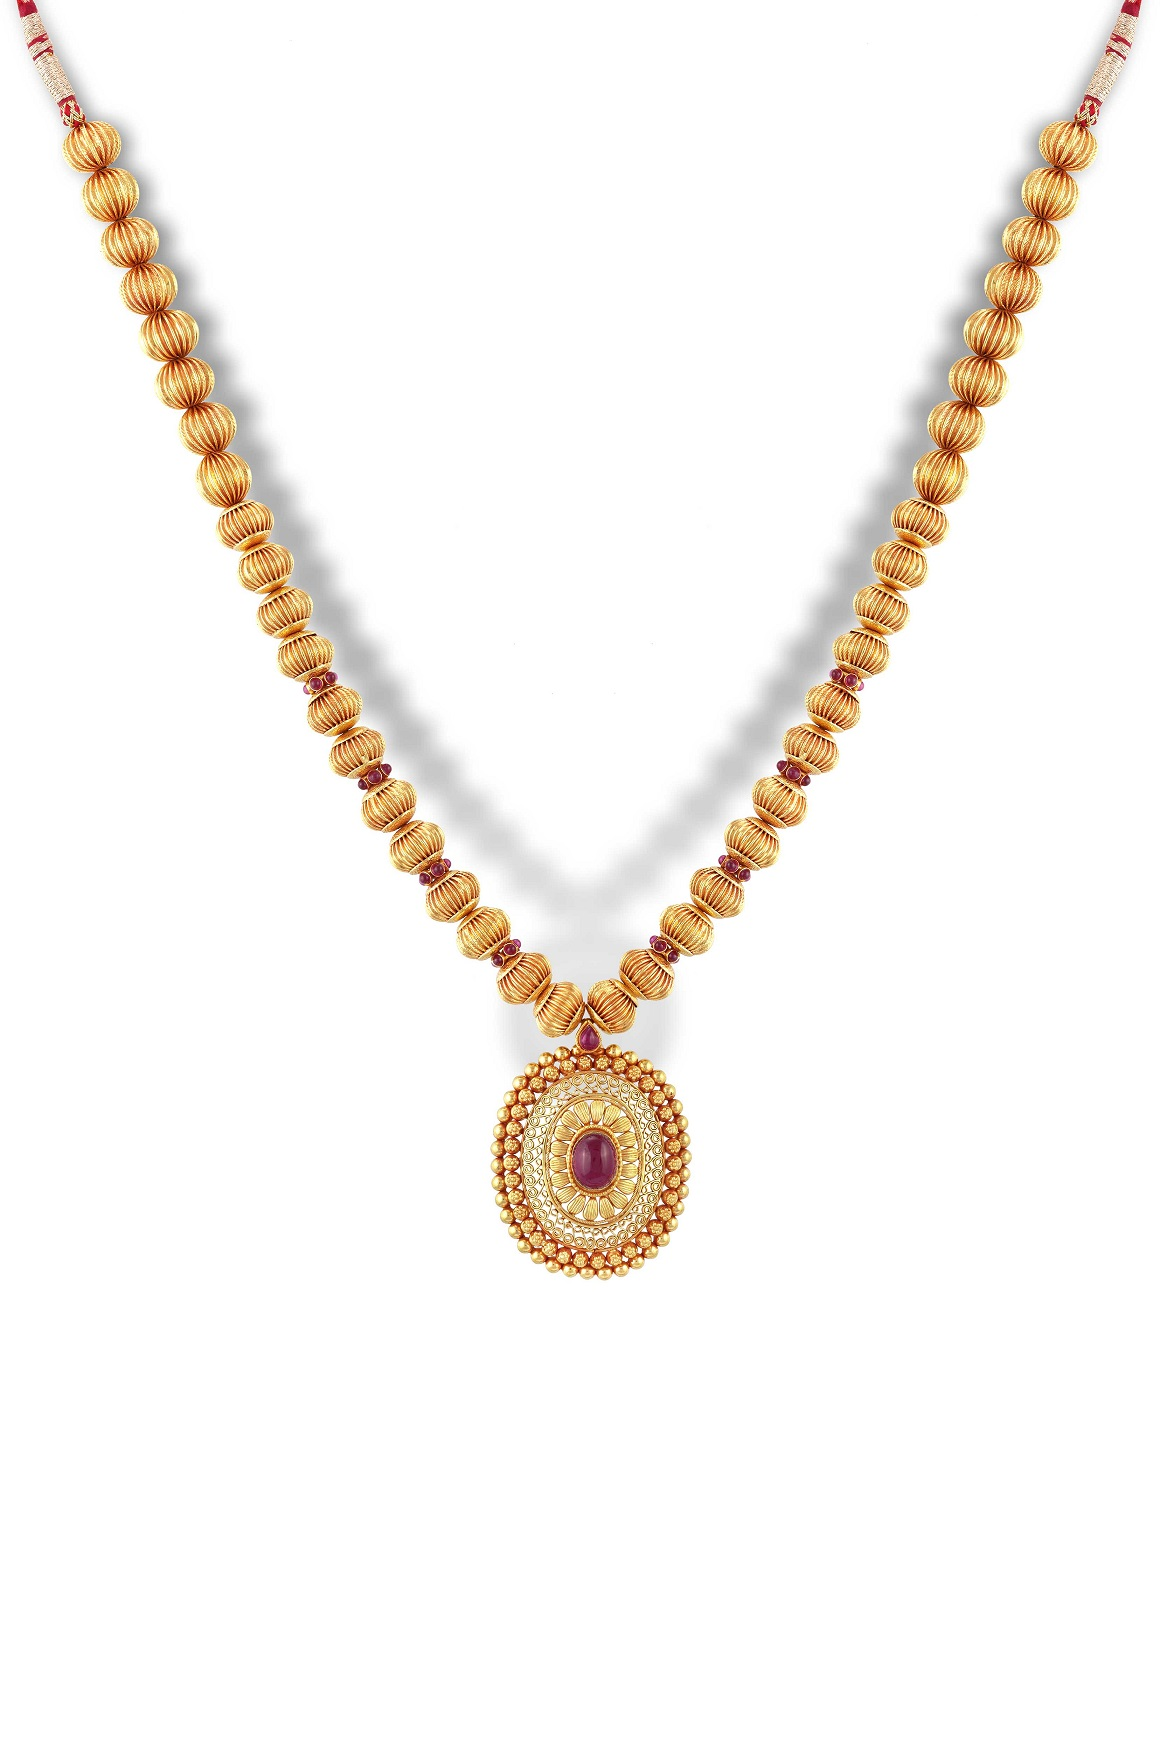 Gold Necklace Designs | Buy Gold Necklace Online - Chintamanis